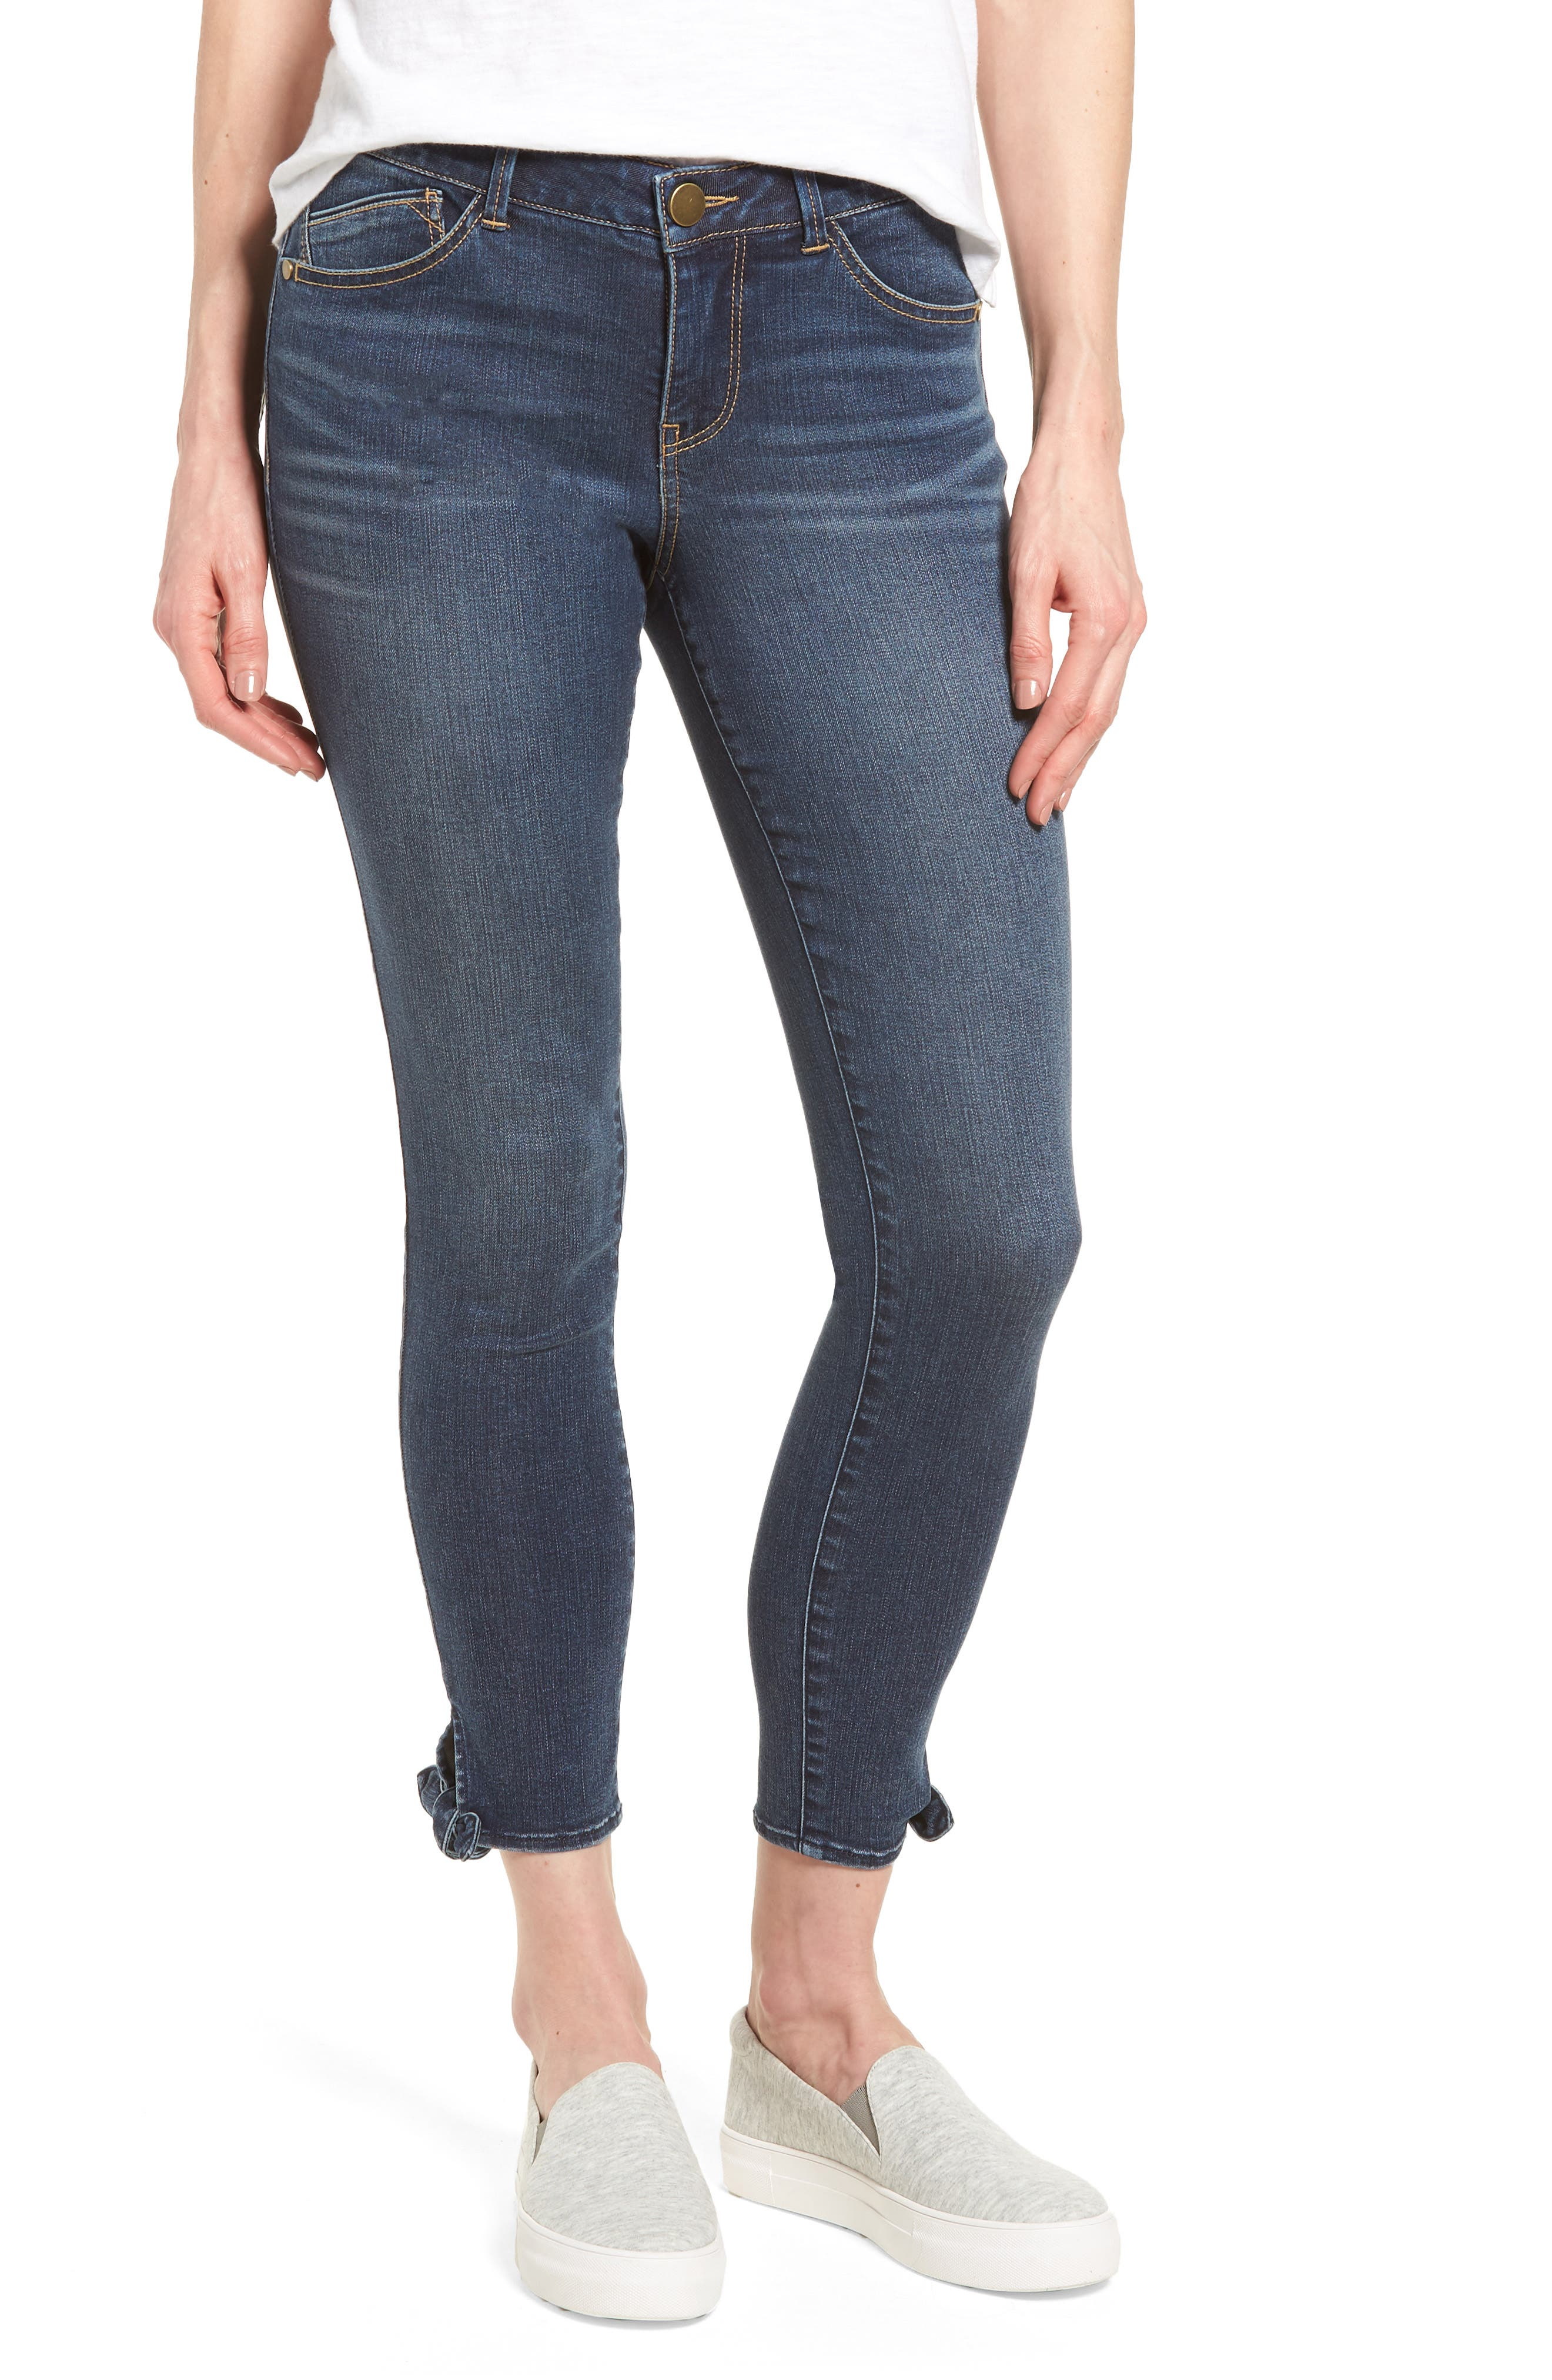 Ab-solution Ankle Skinny Skimmer Jeans,                         Main,                         color, 420